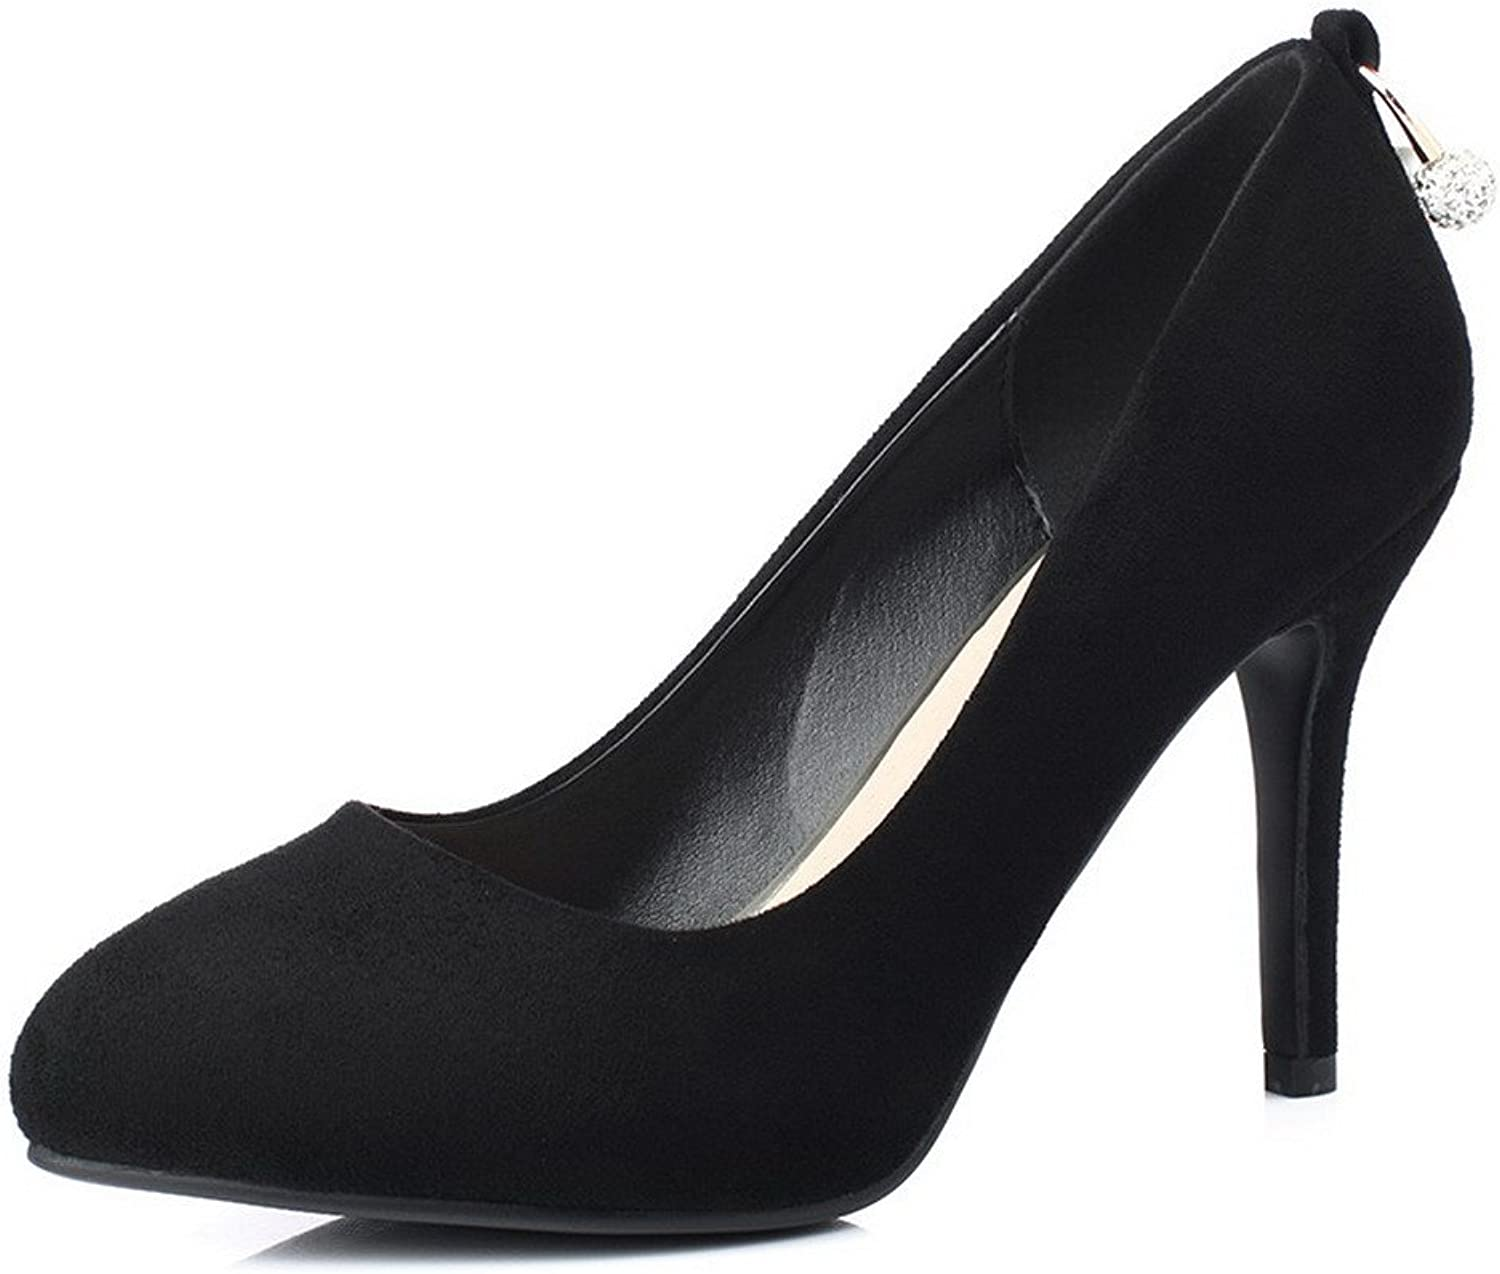 AllhqFashion Women's Imitated Suede Solid Pull-on Pointed Closed Toe High-Heels Pumps-shoes